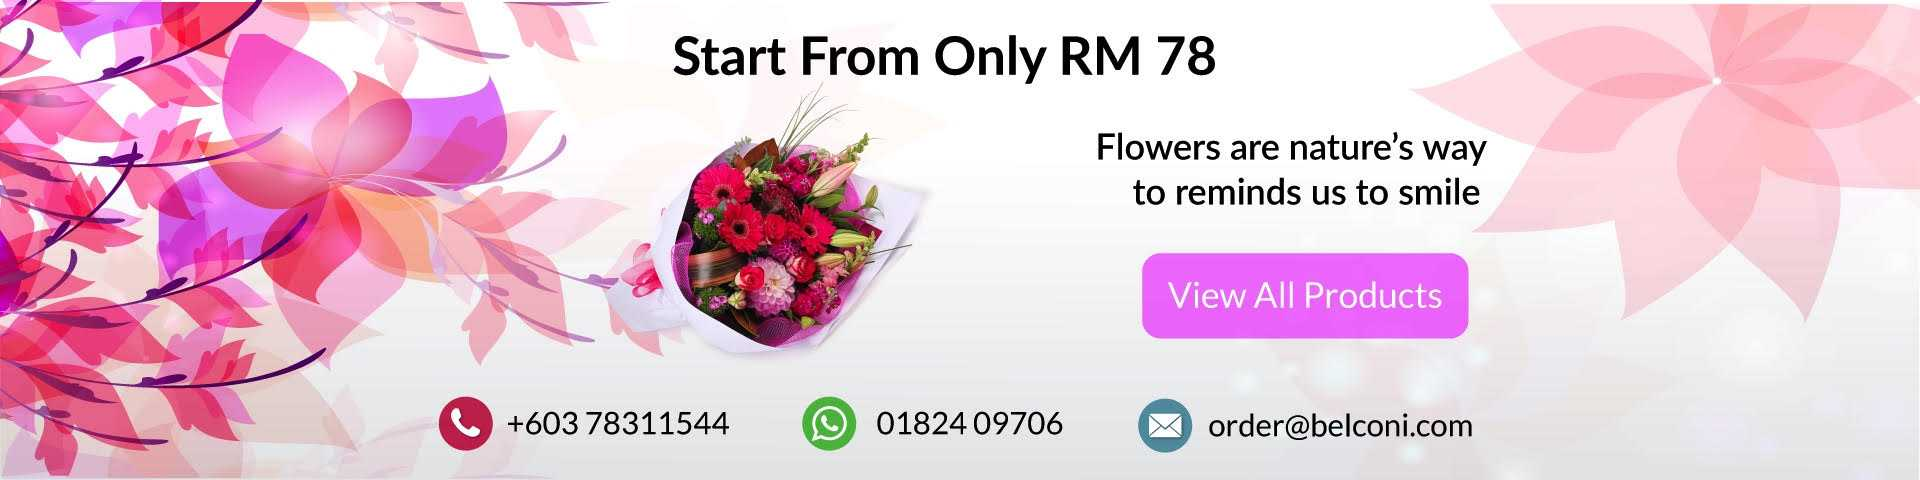 02 - Best Flower Shop In Malaysia | Same Day Free Express Flower Delivery - Belconi Florist -